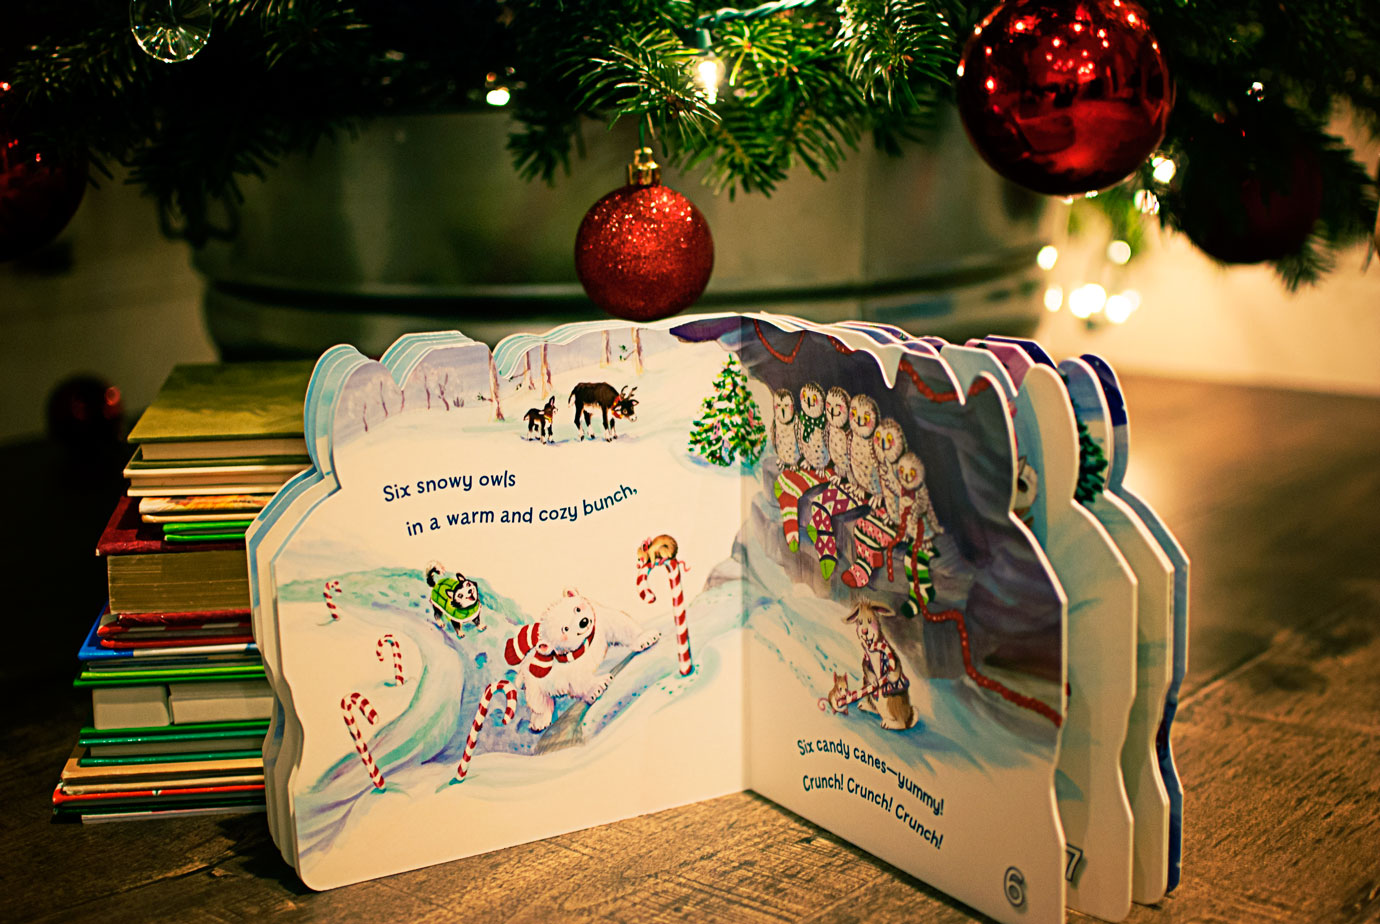 One Christmas Bear A Peek Inside The Book At The Adorable Illustrations #OneChristmasBear #ChristmasBook #ChristmasTraditions